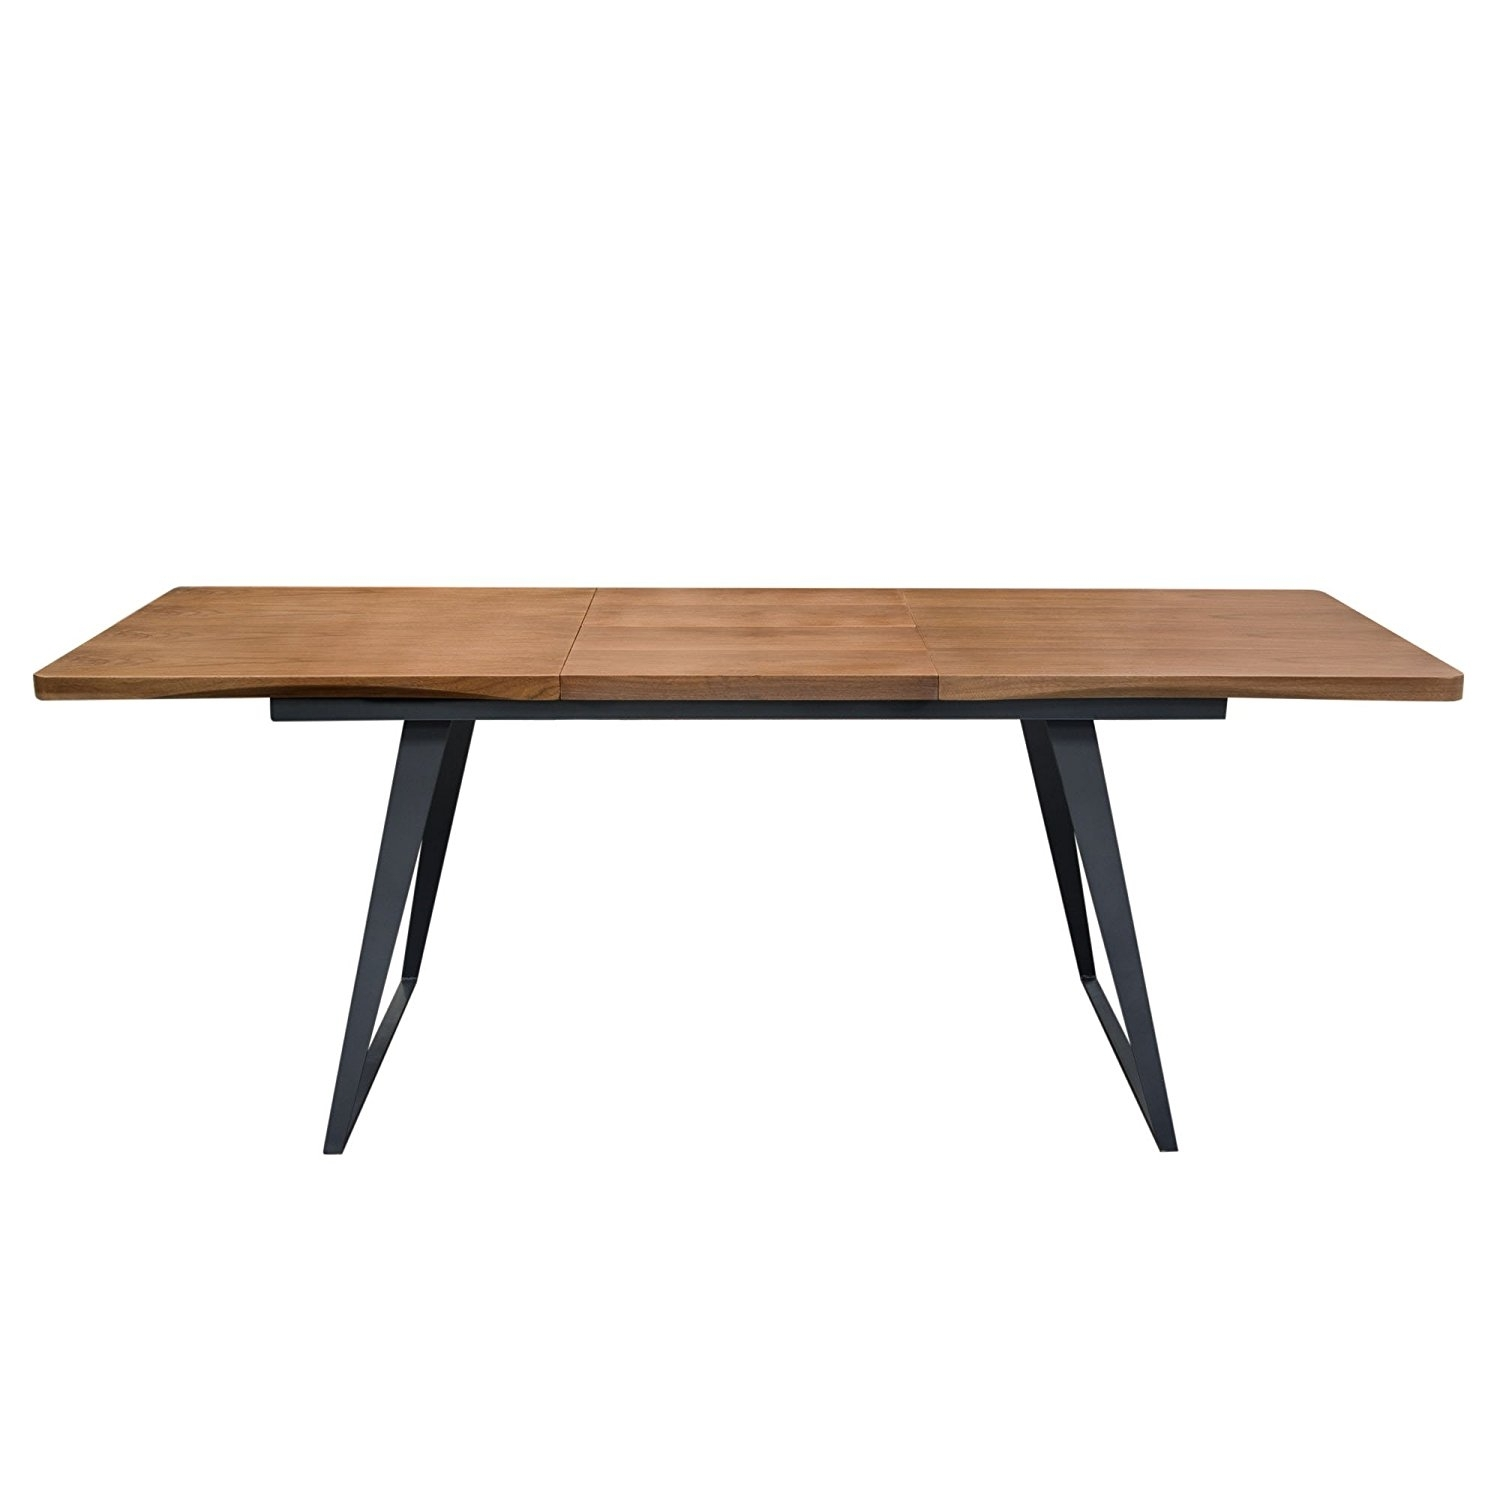 Cheap Dining Room Extension Table, Find Dining Room Extension Table For Current Valencia 72 Inch Extension Trestle Dining Tables (Image 8 of 20)